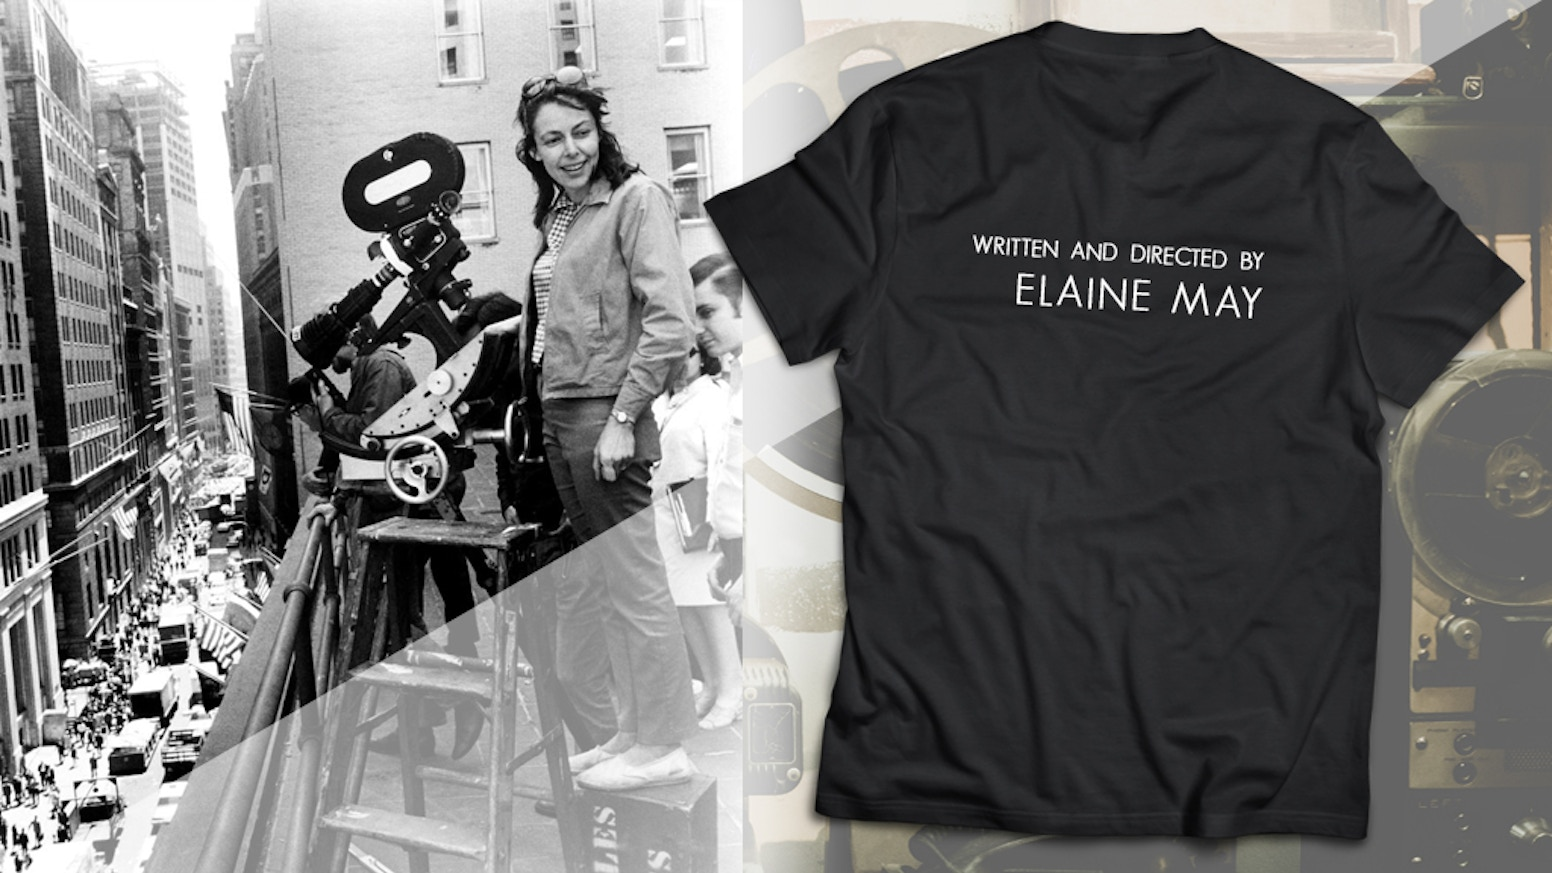 Elaine May lovers should wear their affection for the world to see. This limited edition tee is a tribute to the inimitable filmmaker.